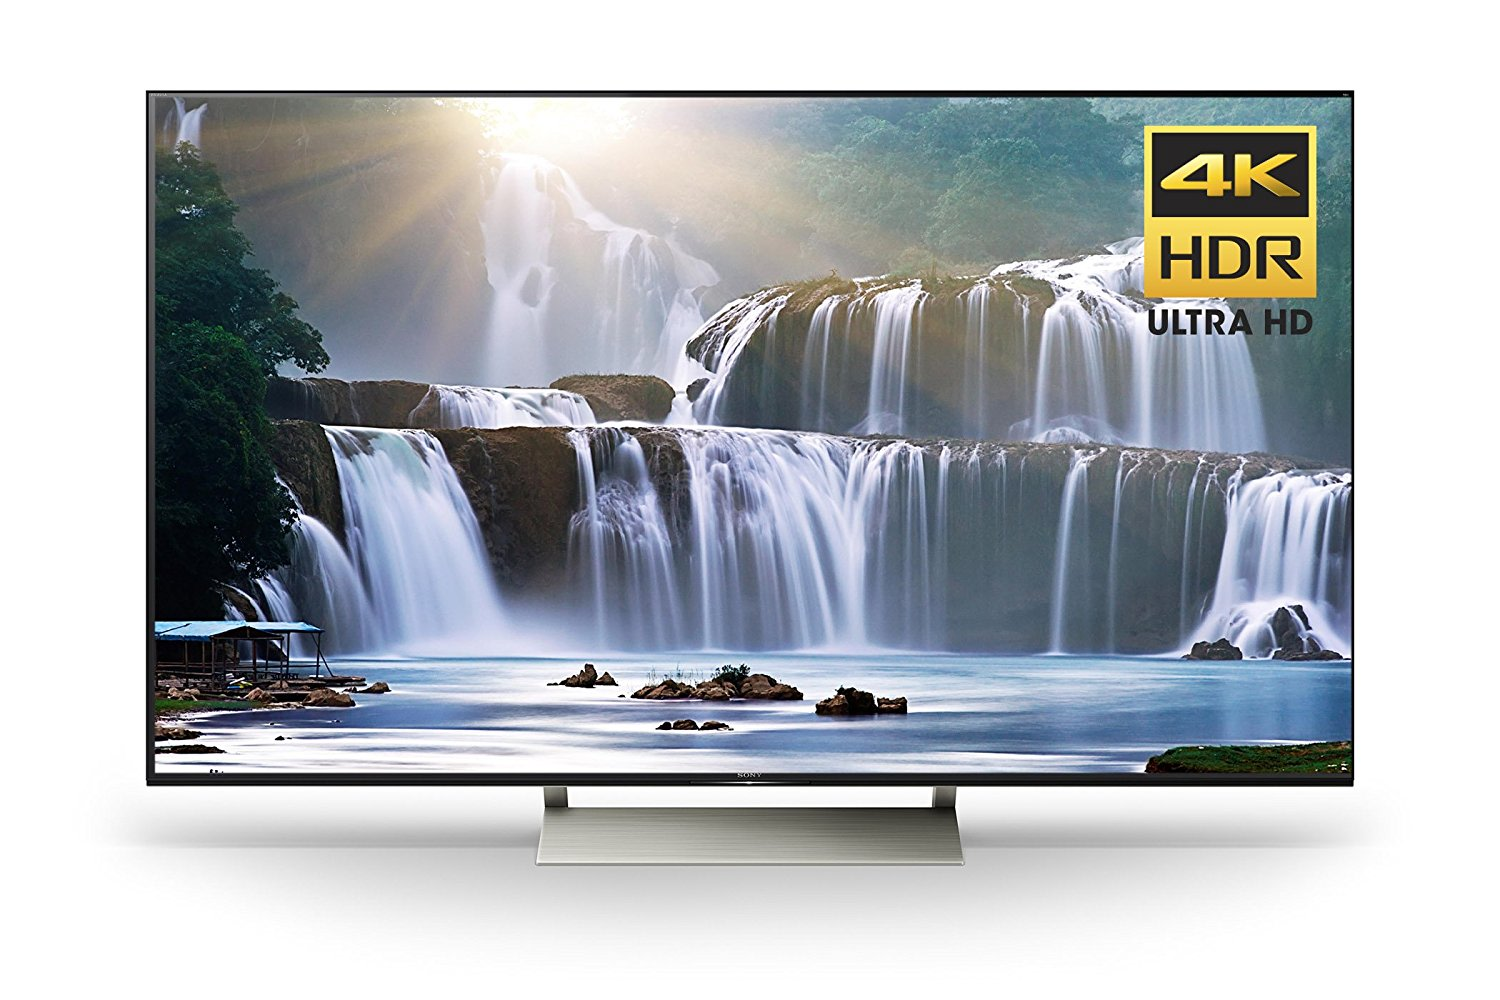 An image of Sony X930E Series XBR55X930E 55-Inch HDR 4K LED 120Hz TV with Sony Motionflow XR 960